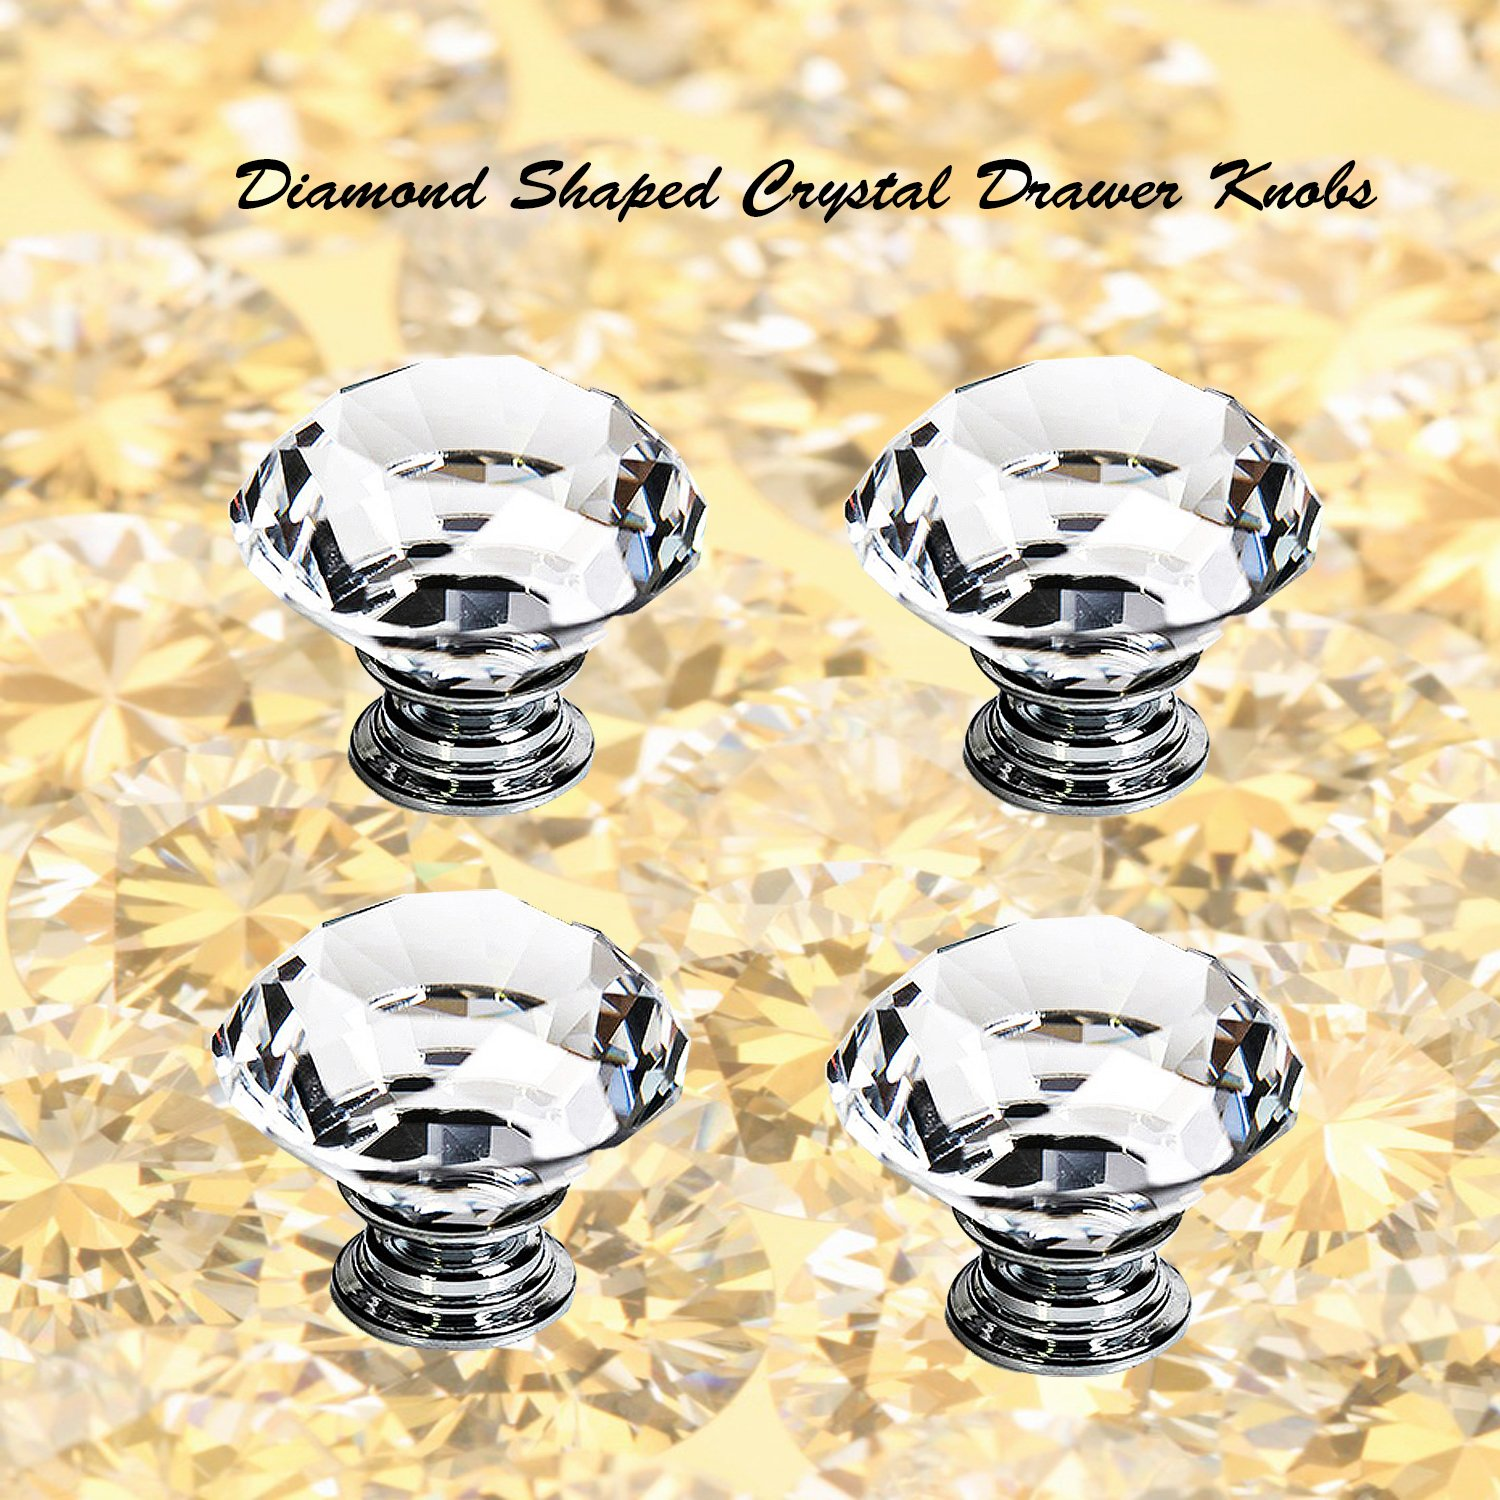 Dresser Crystal Knobs - 30MM 25 PCS Glass Crystal Drawer Knobs Pulls Cabinet Handle for Home Kitchen Wardrobe Cupboard by LanGui (Image #9)